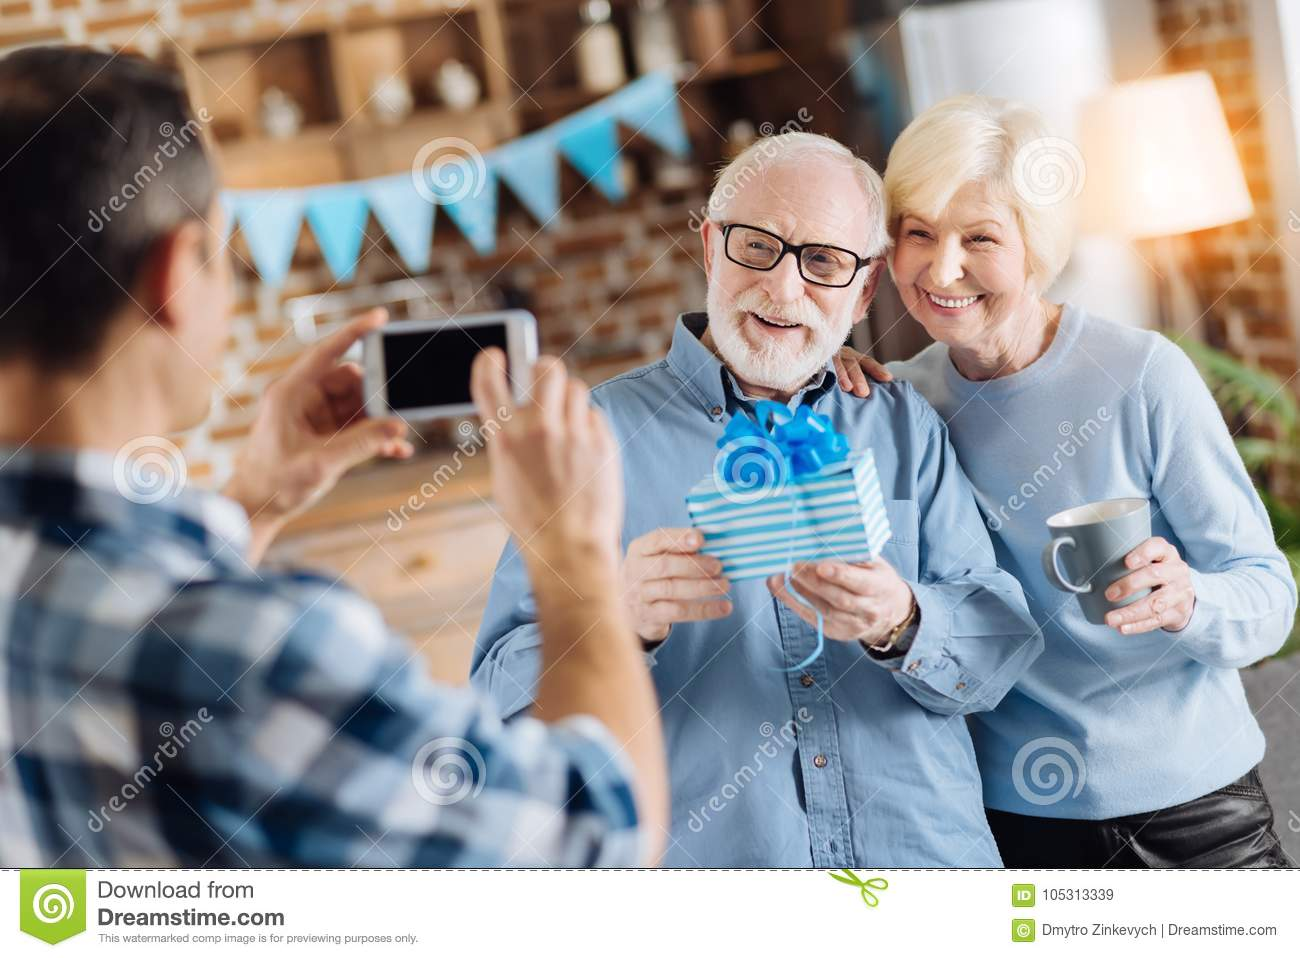 Loving Young Son Taking A Picture Of His Elderly Parents Posing With Birthday Present During The Party